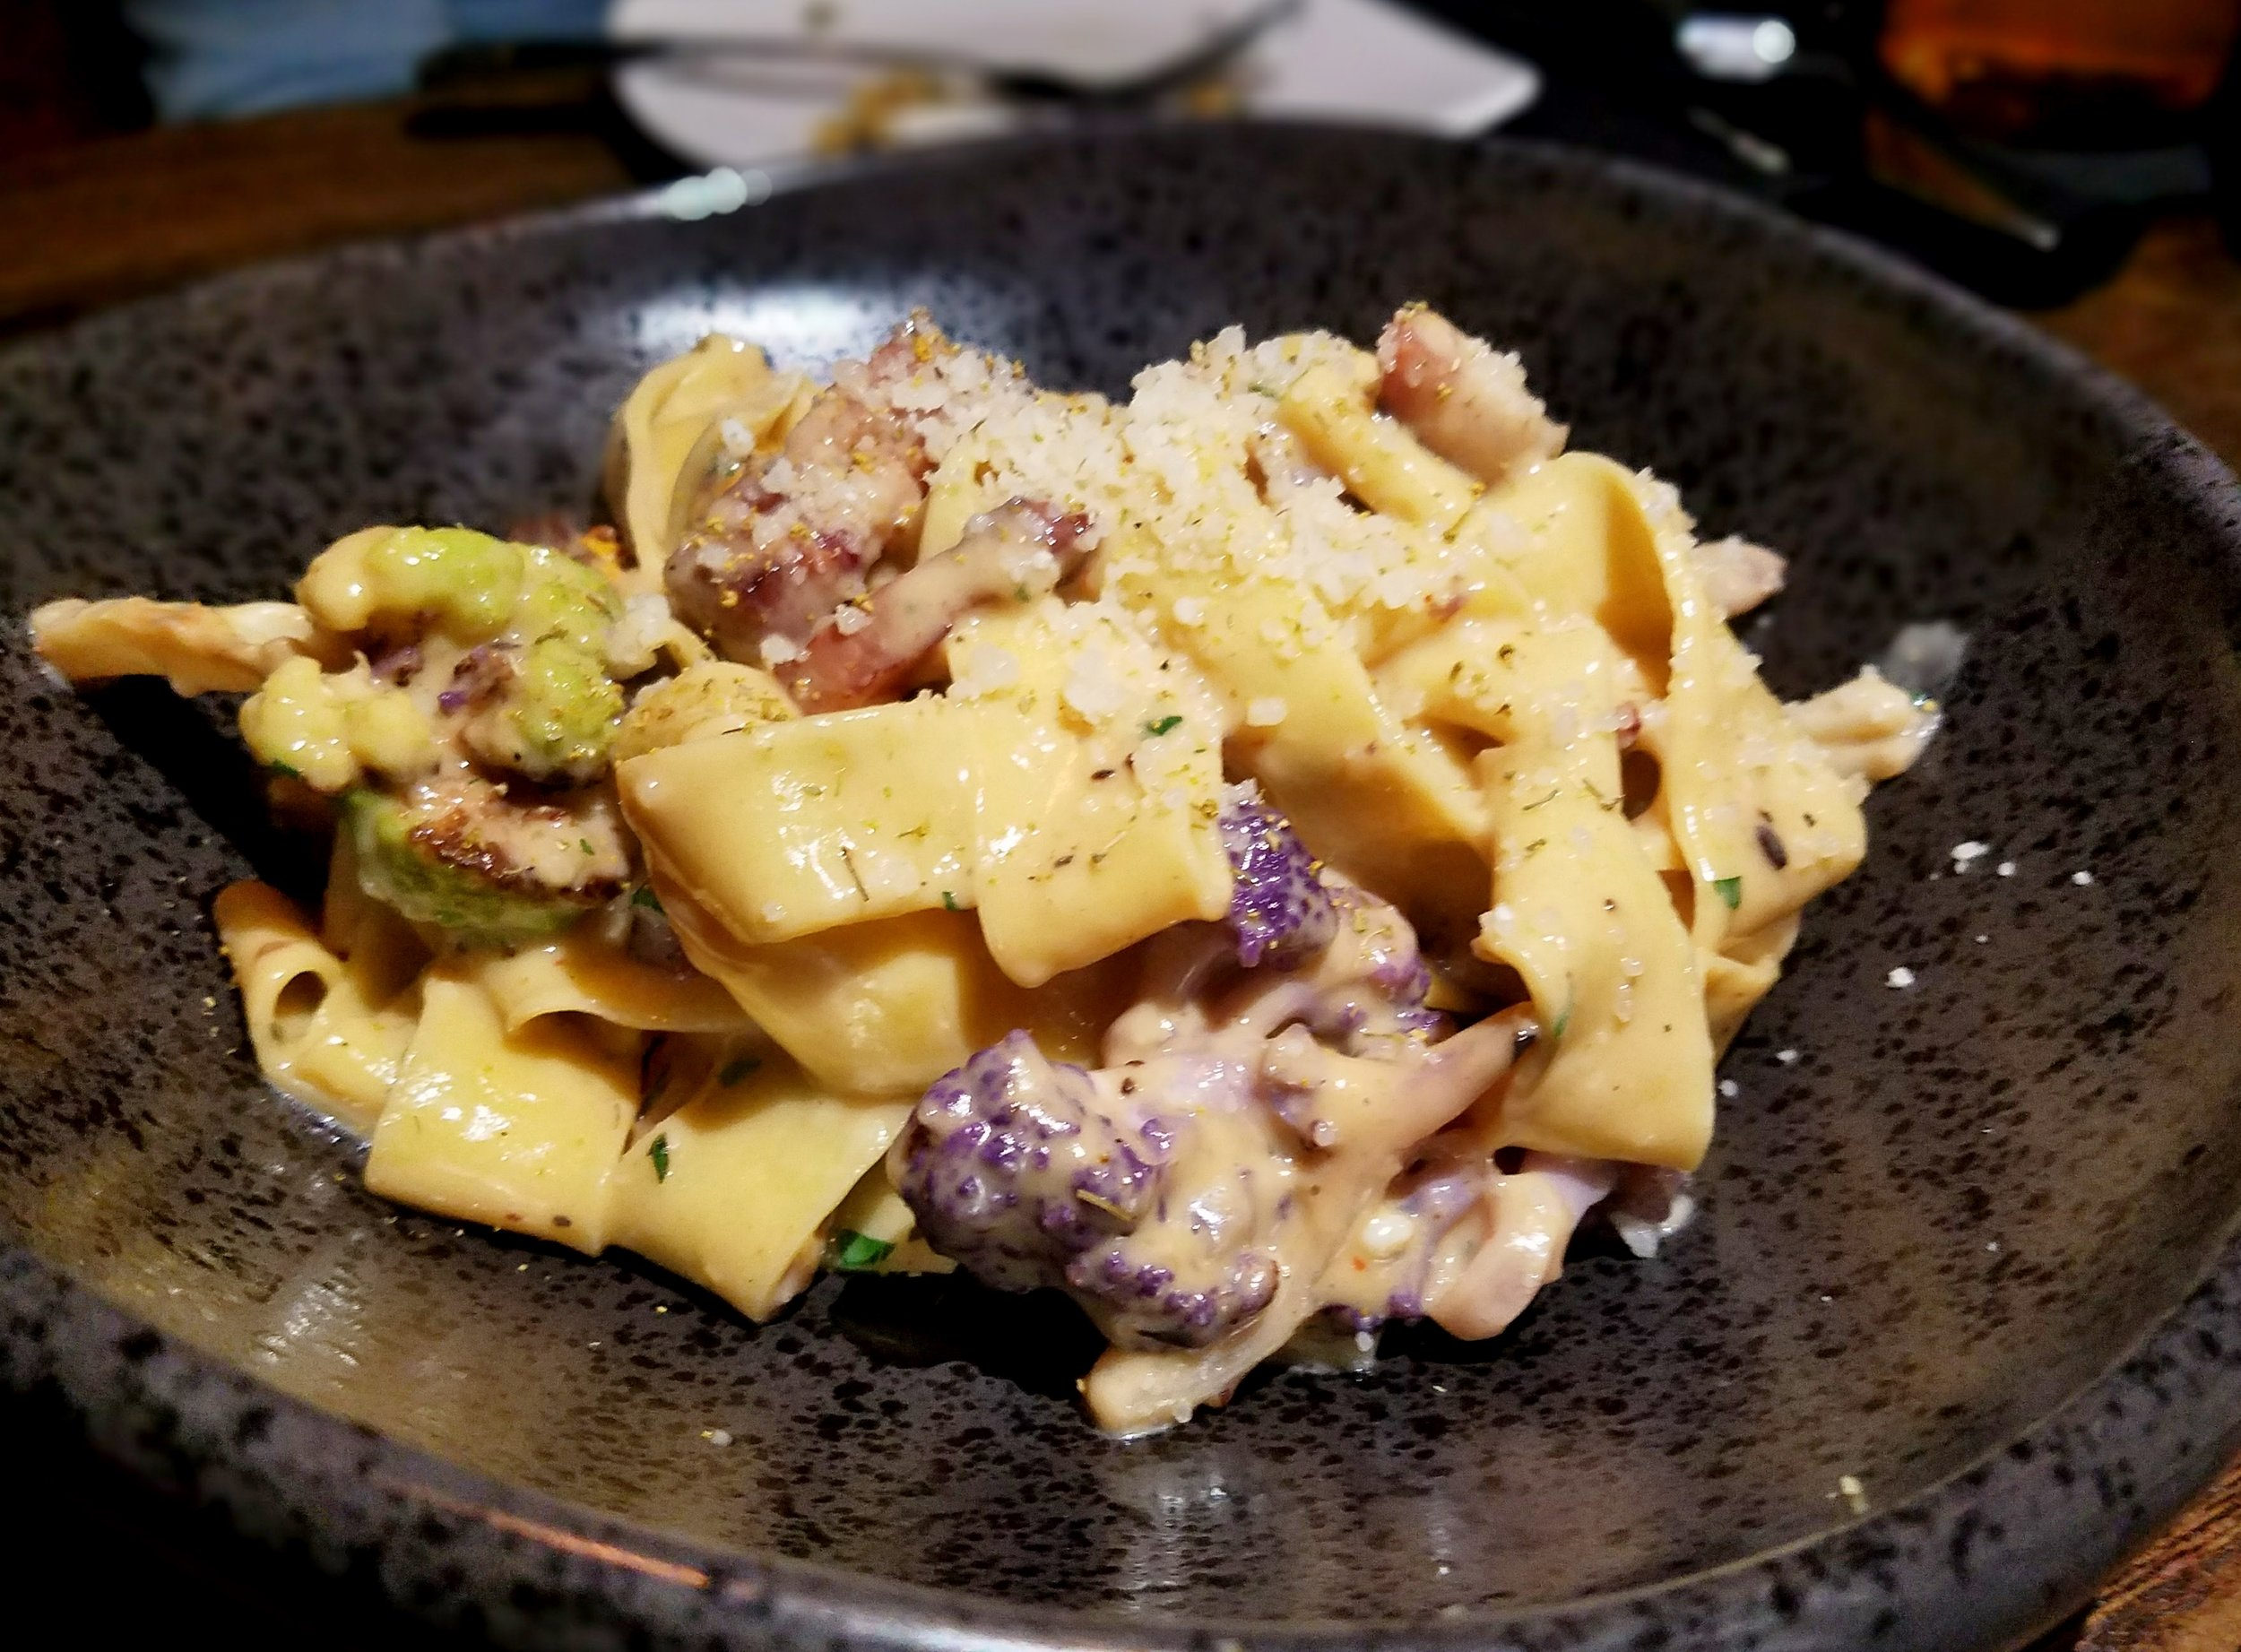 Cauliflower carbonara